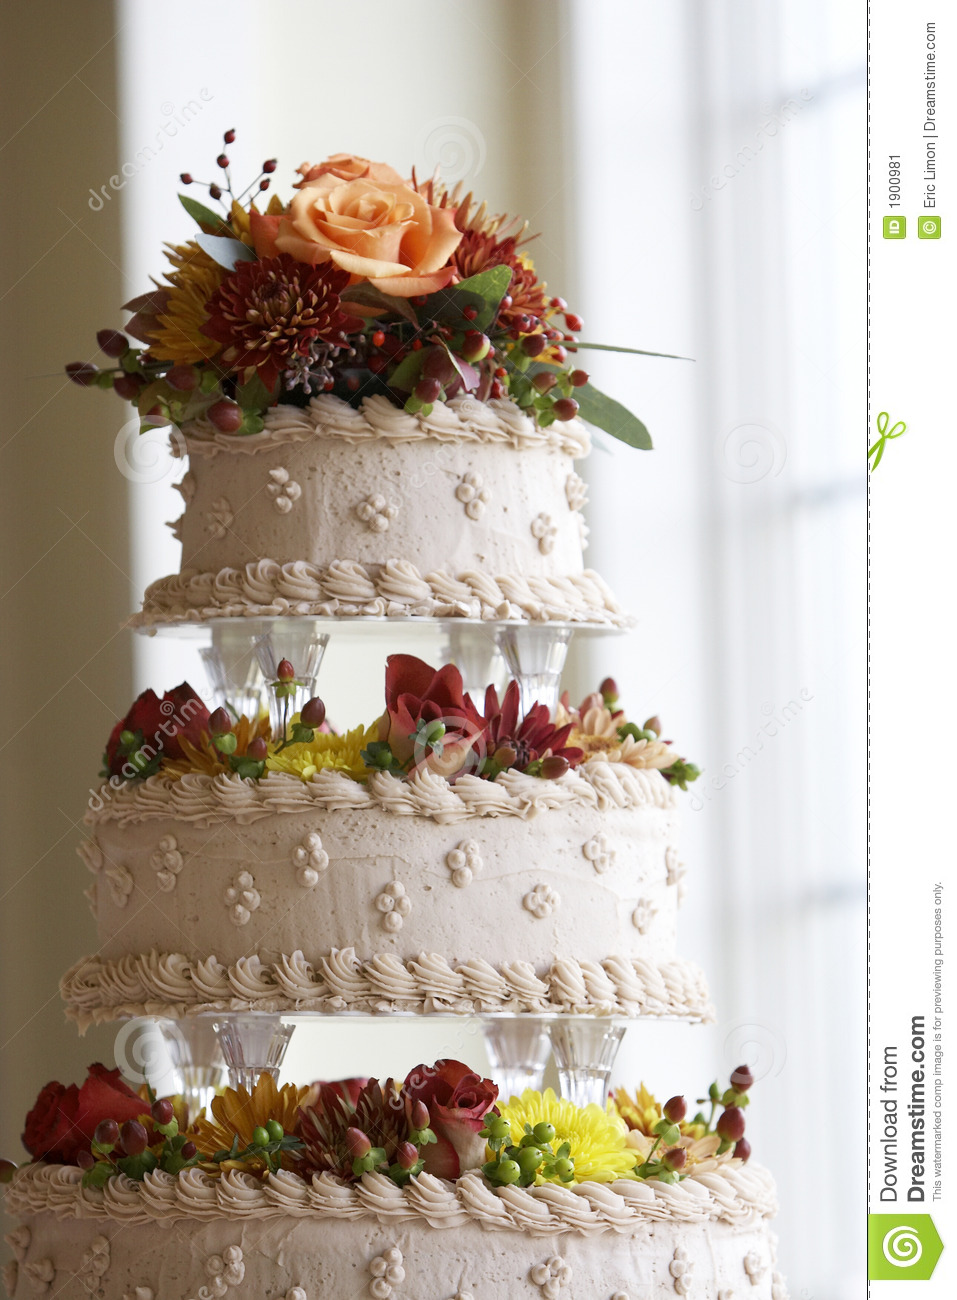 wedding cake flowers decorations wedding cake with flower decorations stock image image 22671